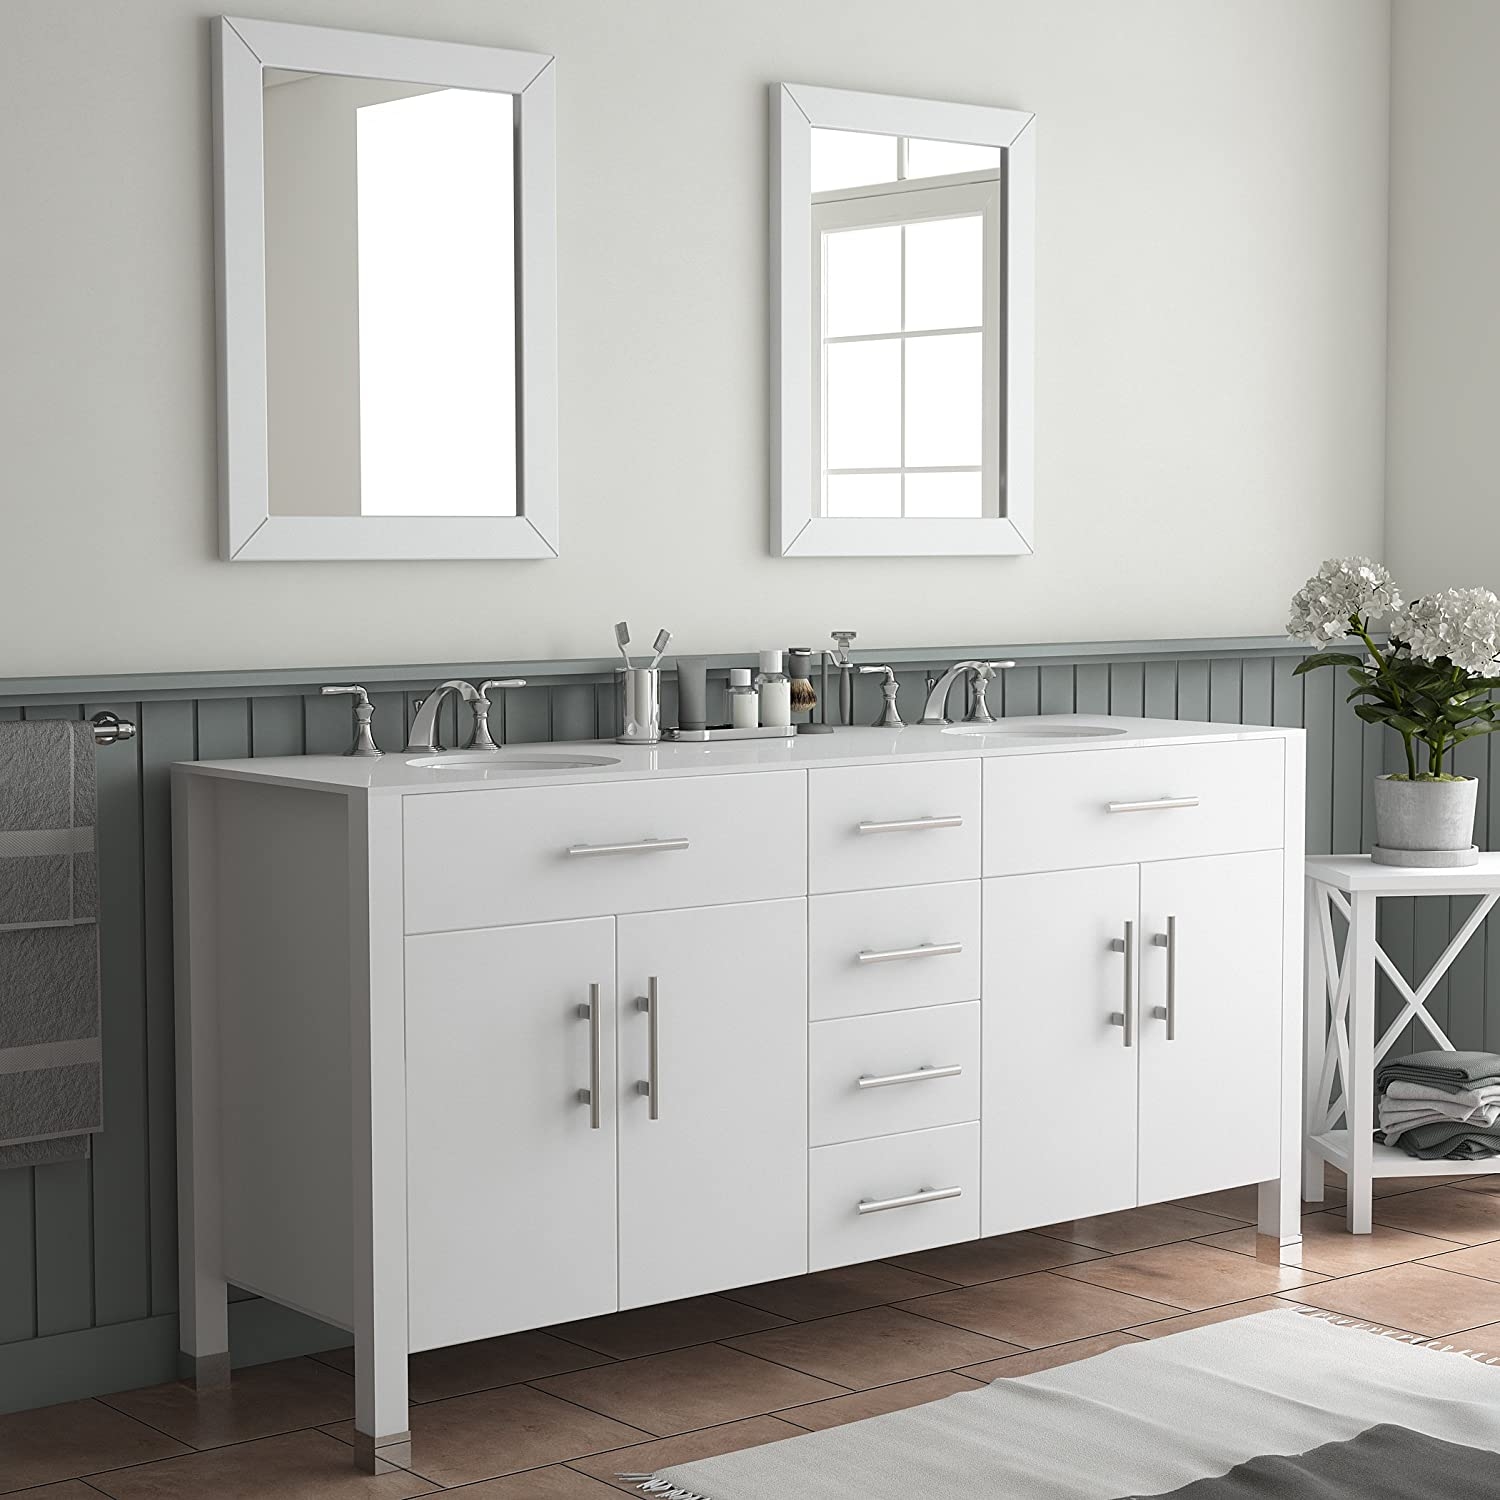 72 white double sink bathroom vanity isabella amazon com rh amazon com 72 bathroom vanity white cabinet only 72 Tall Bathroom Cabinet